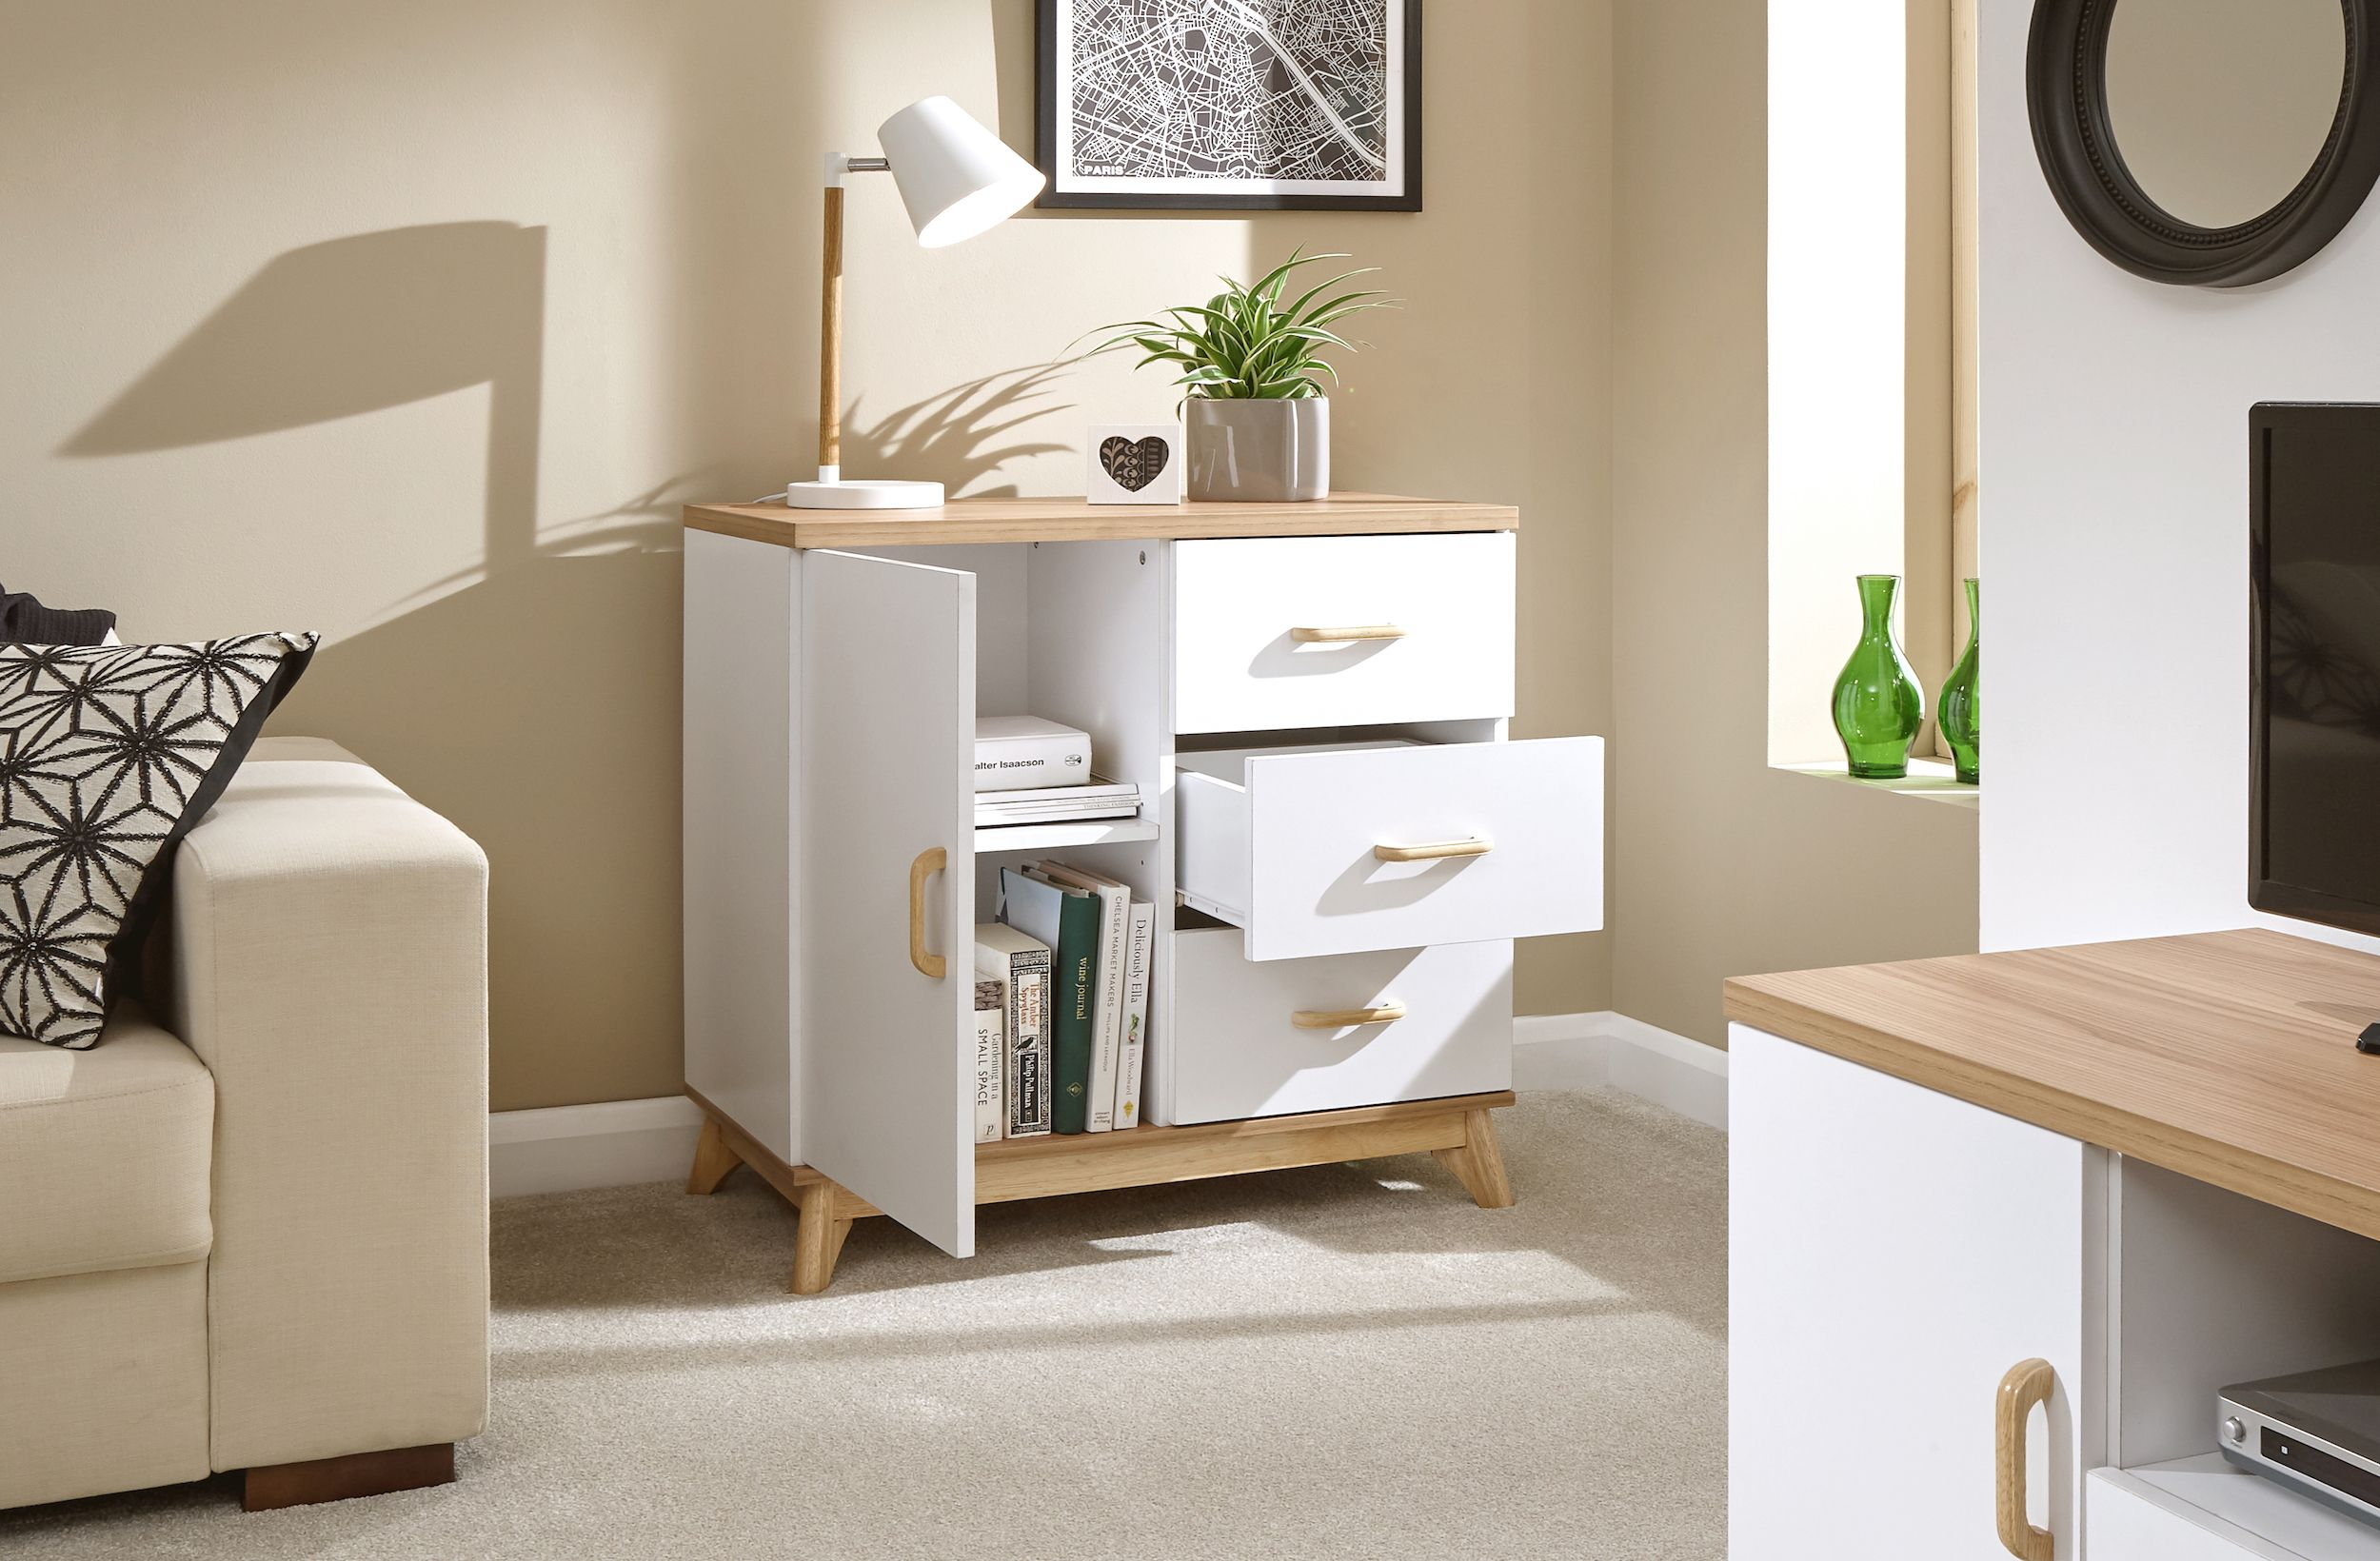 Wayfair Launches Affordable New Brand Hashtag Home